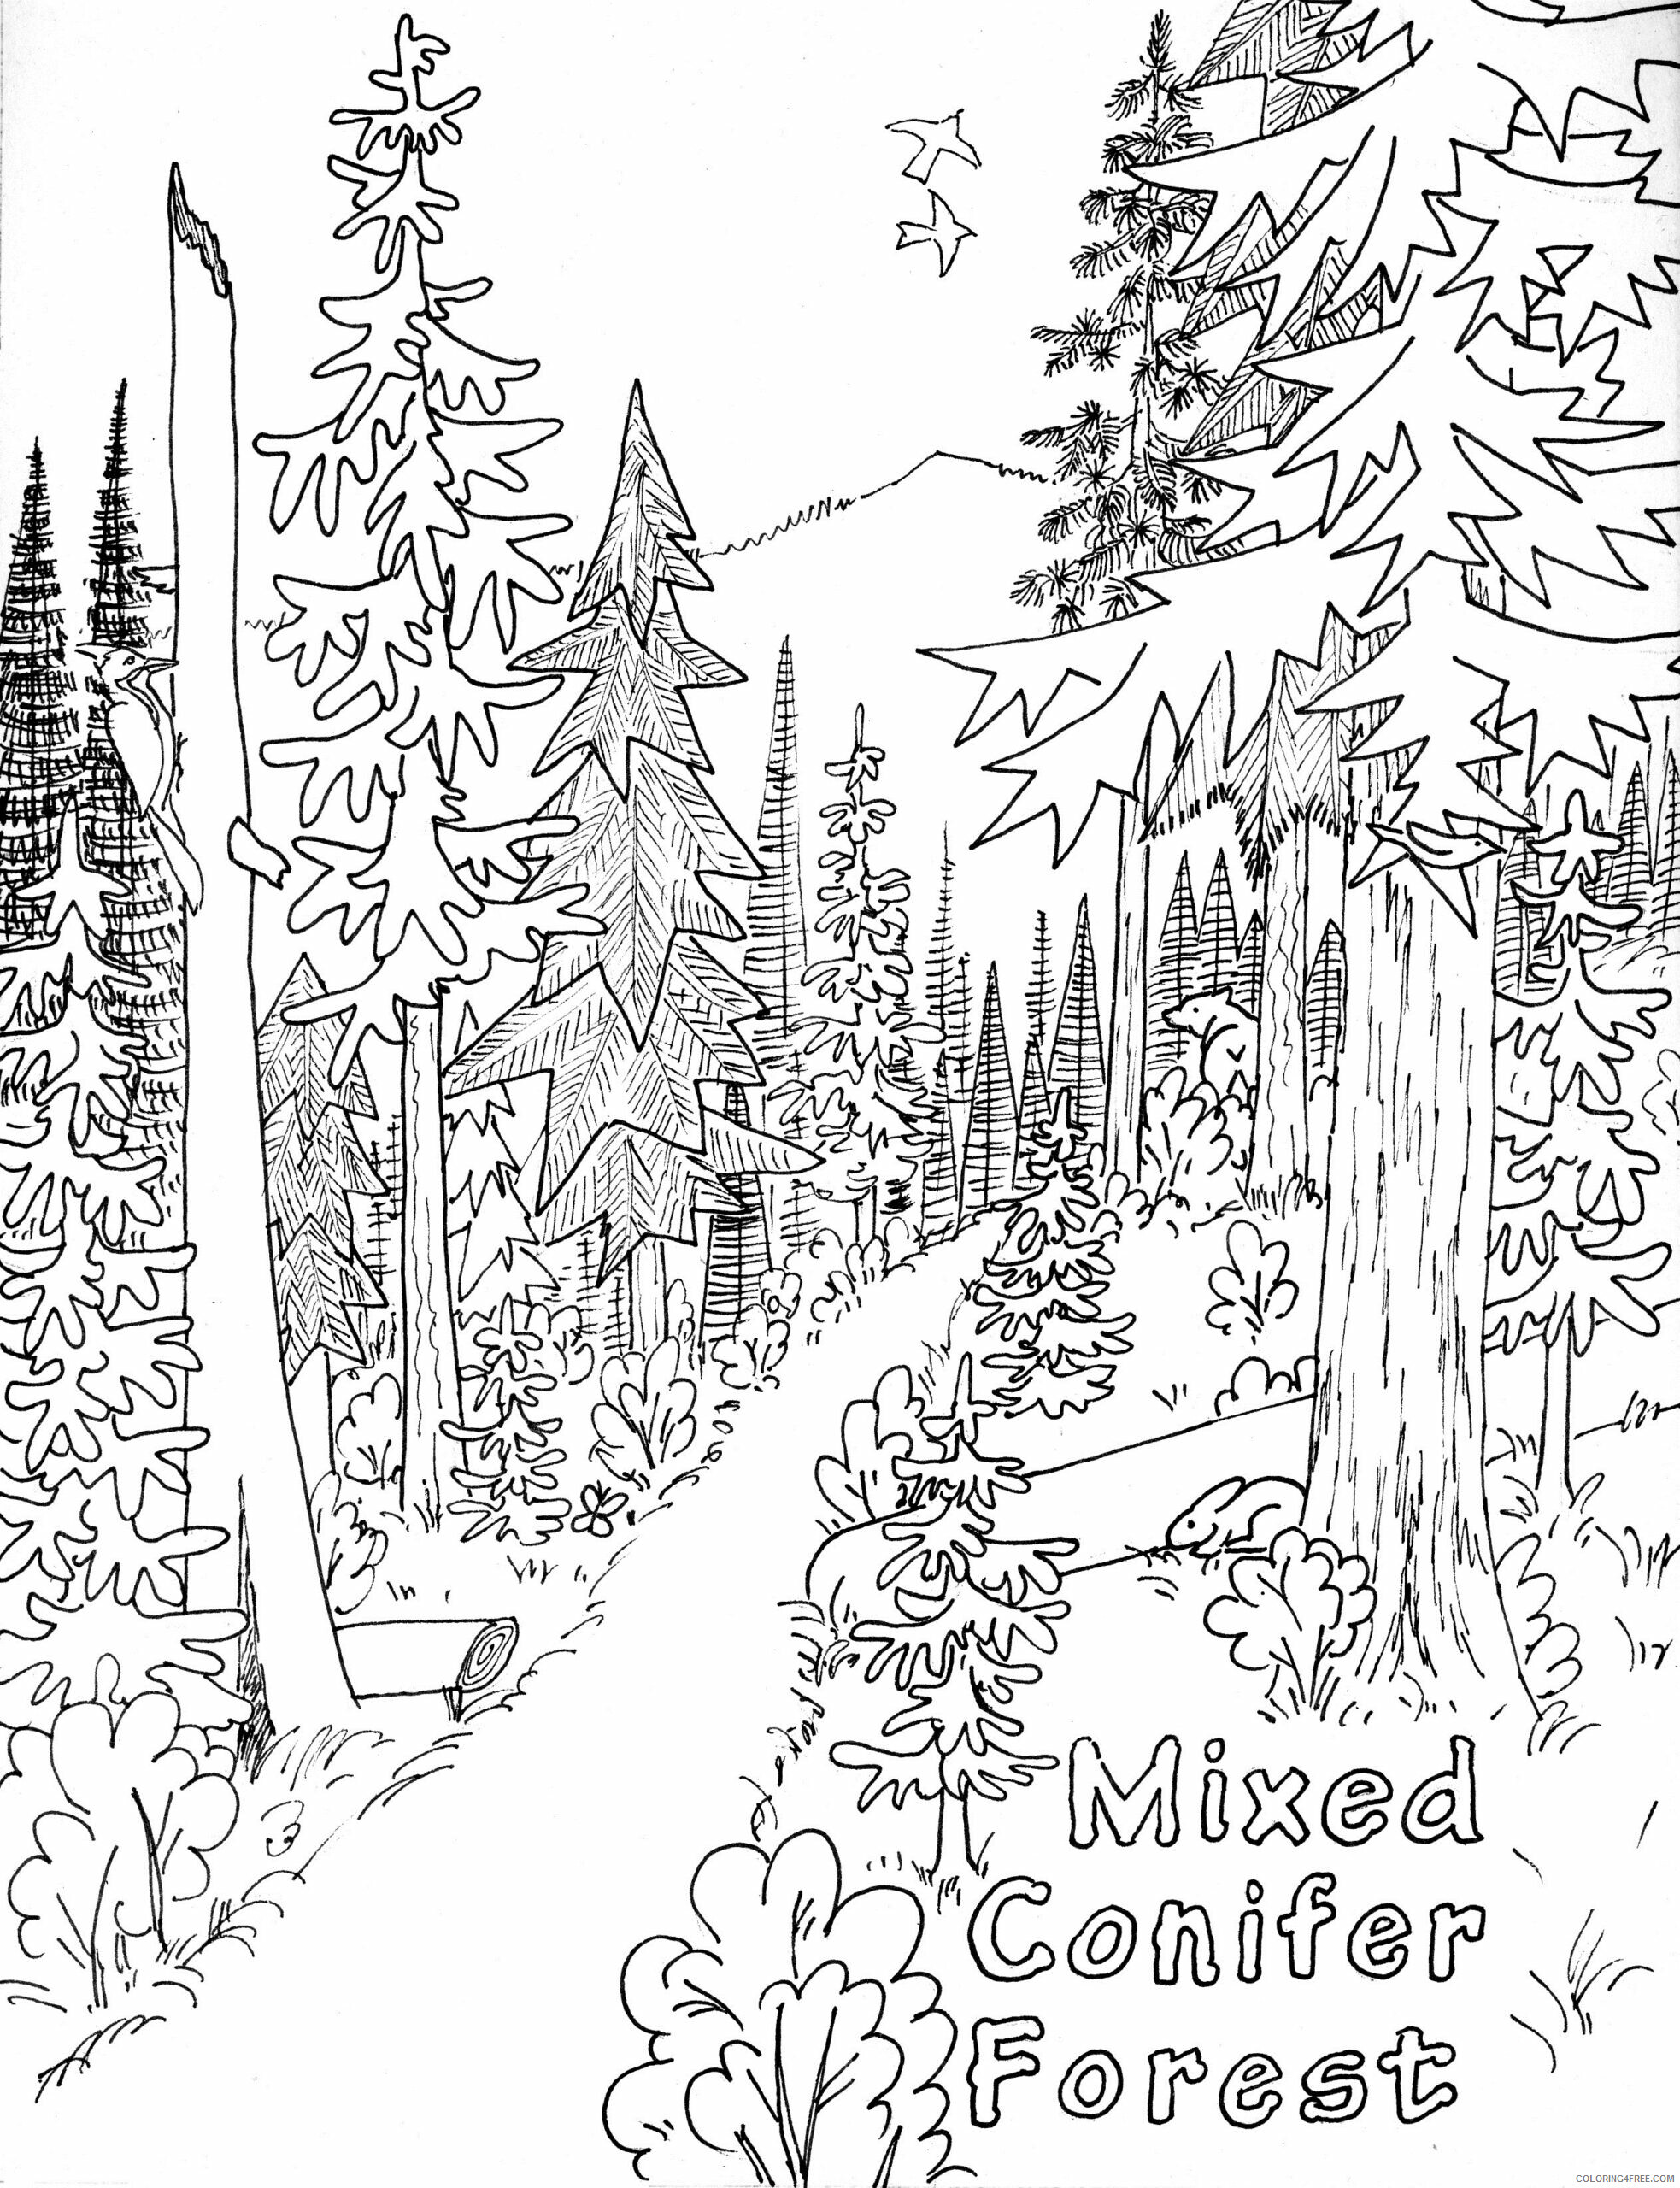 Landscape Coloring Pages Nature Nature To Print Printable 2021 303 Coloring4free Coloring4free Com